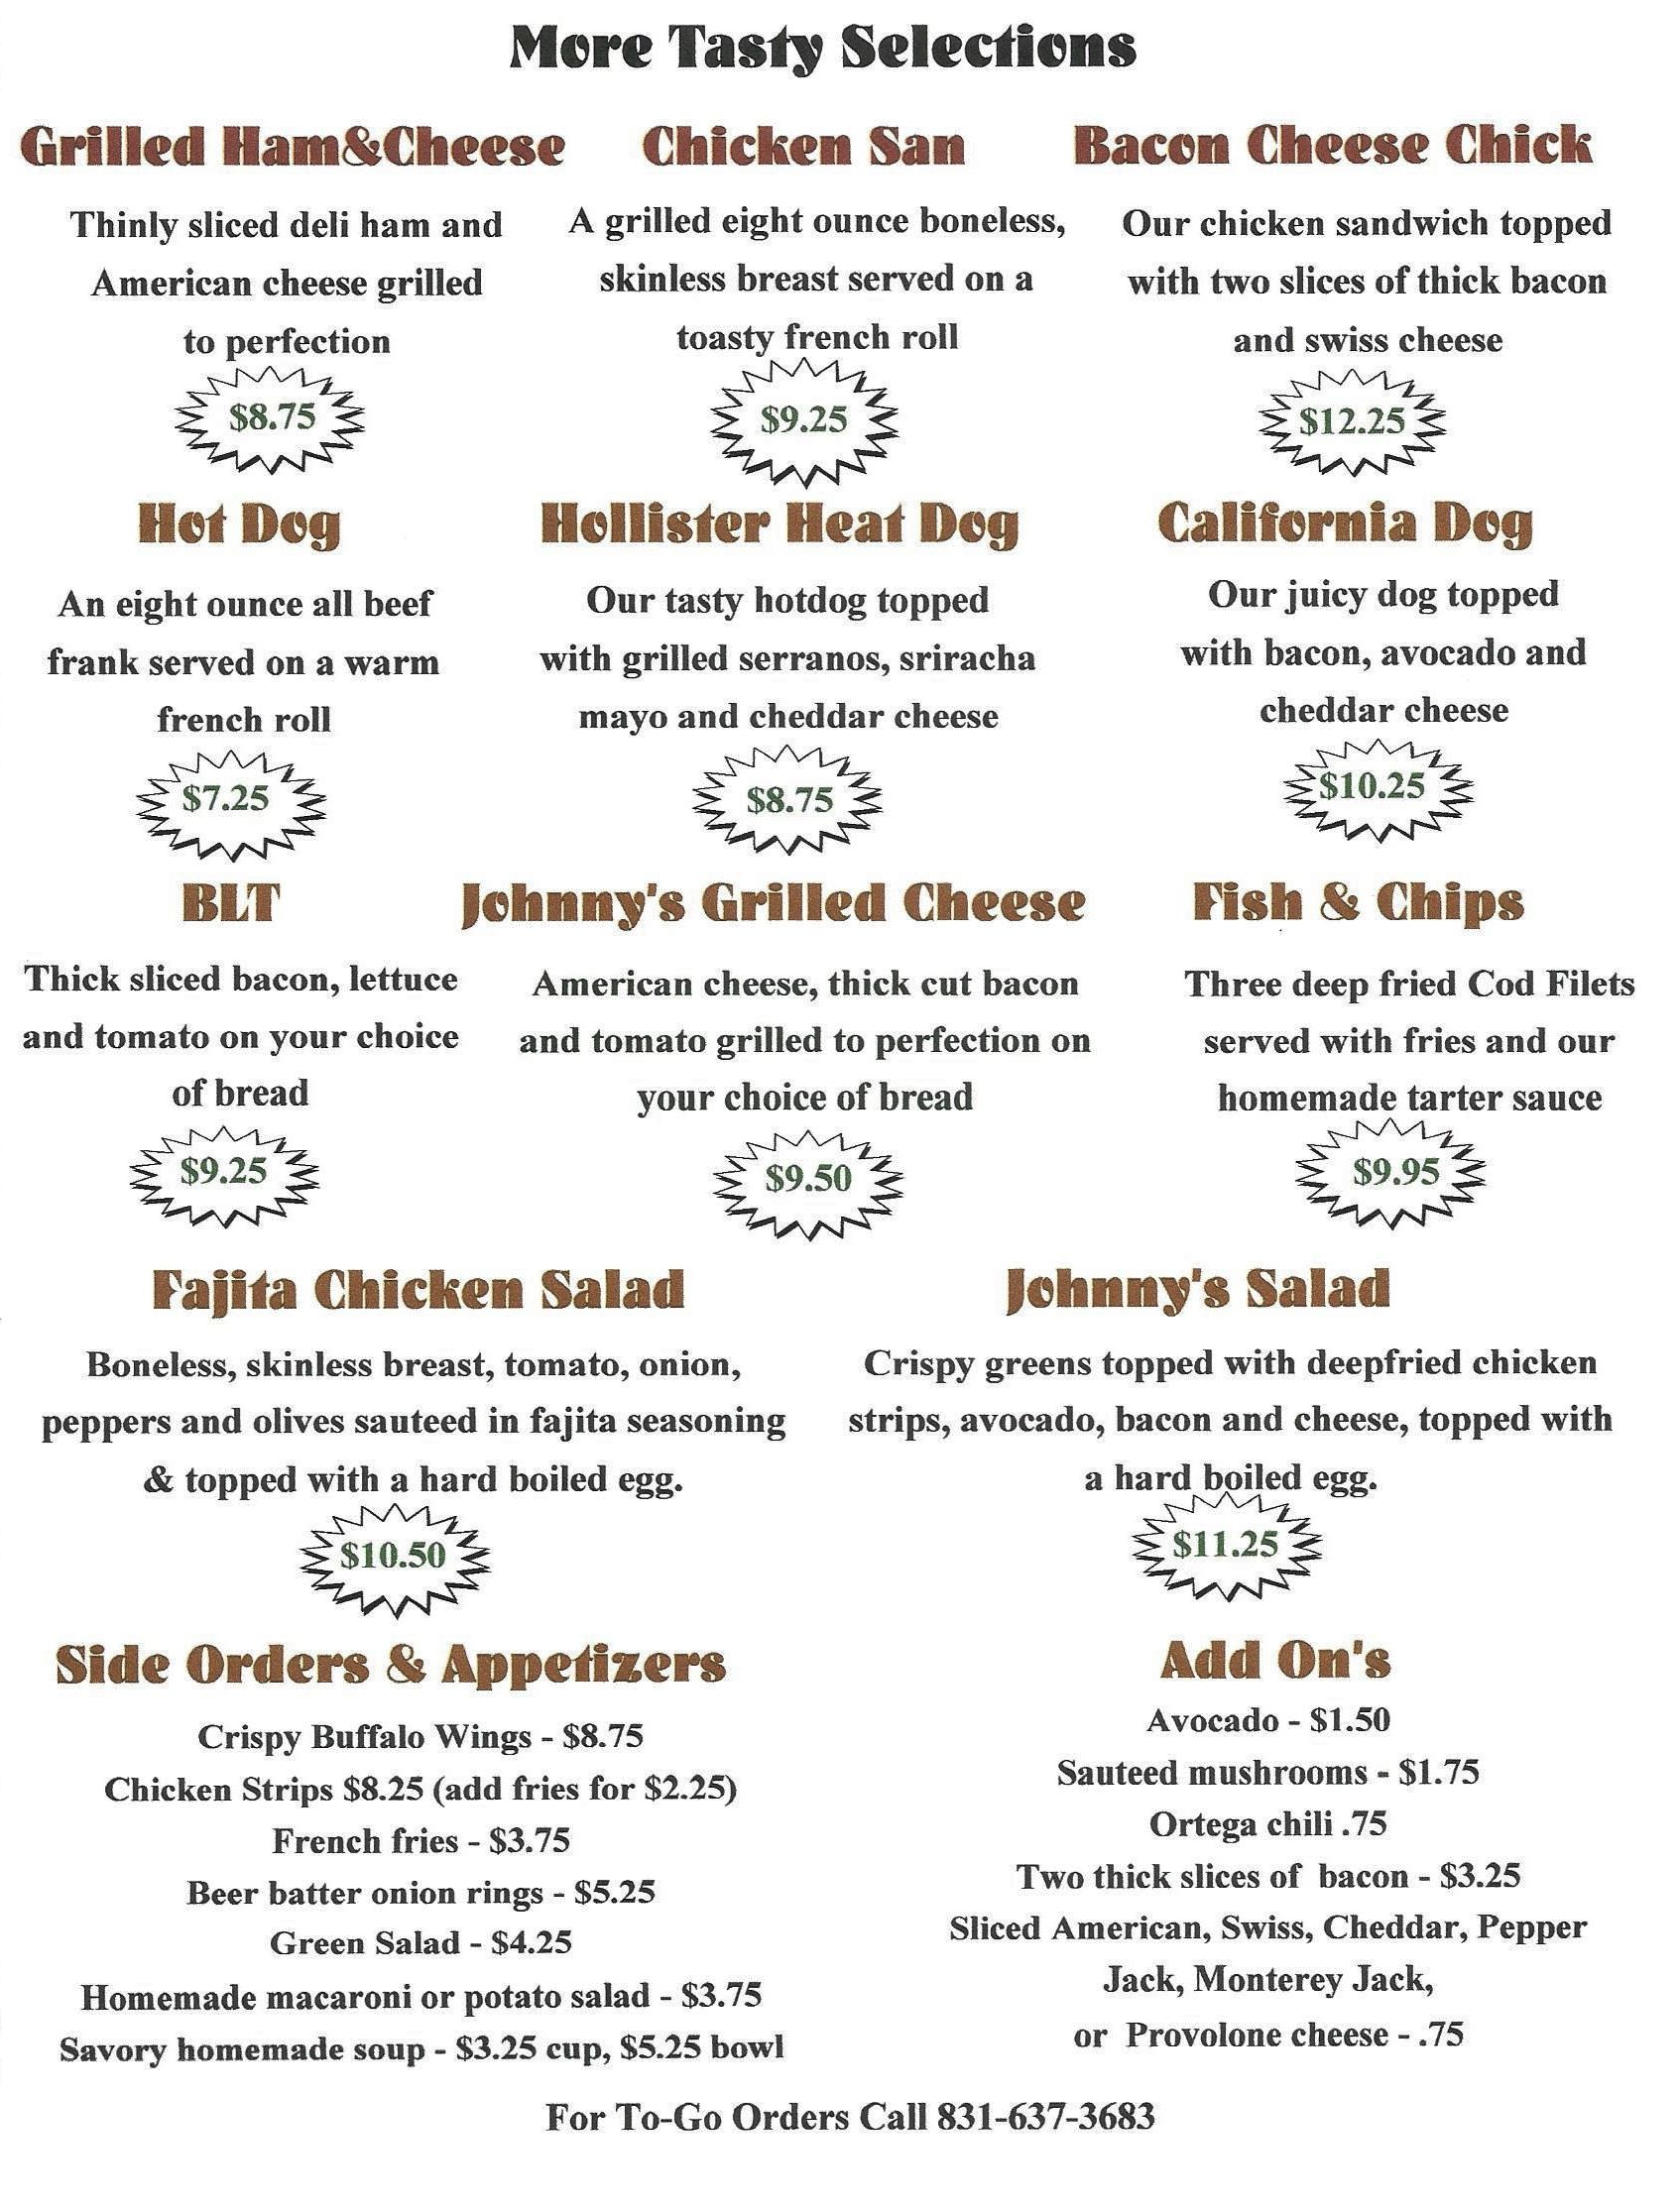 Johnny's Menu - Final Draft copy 2